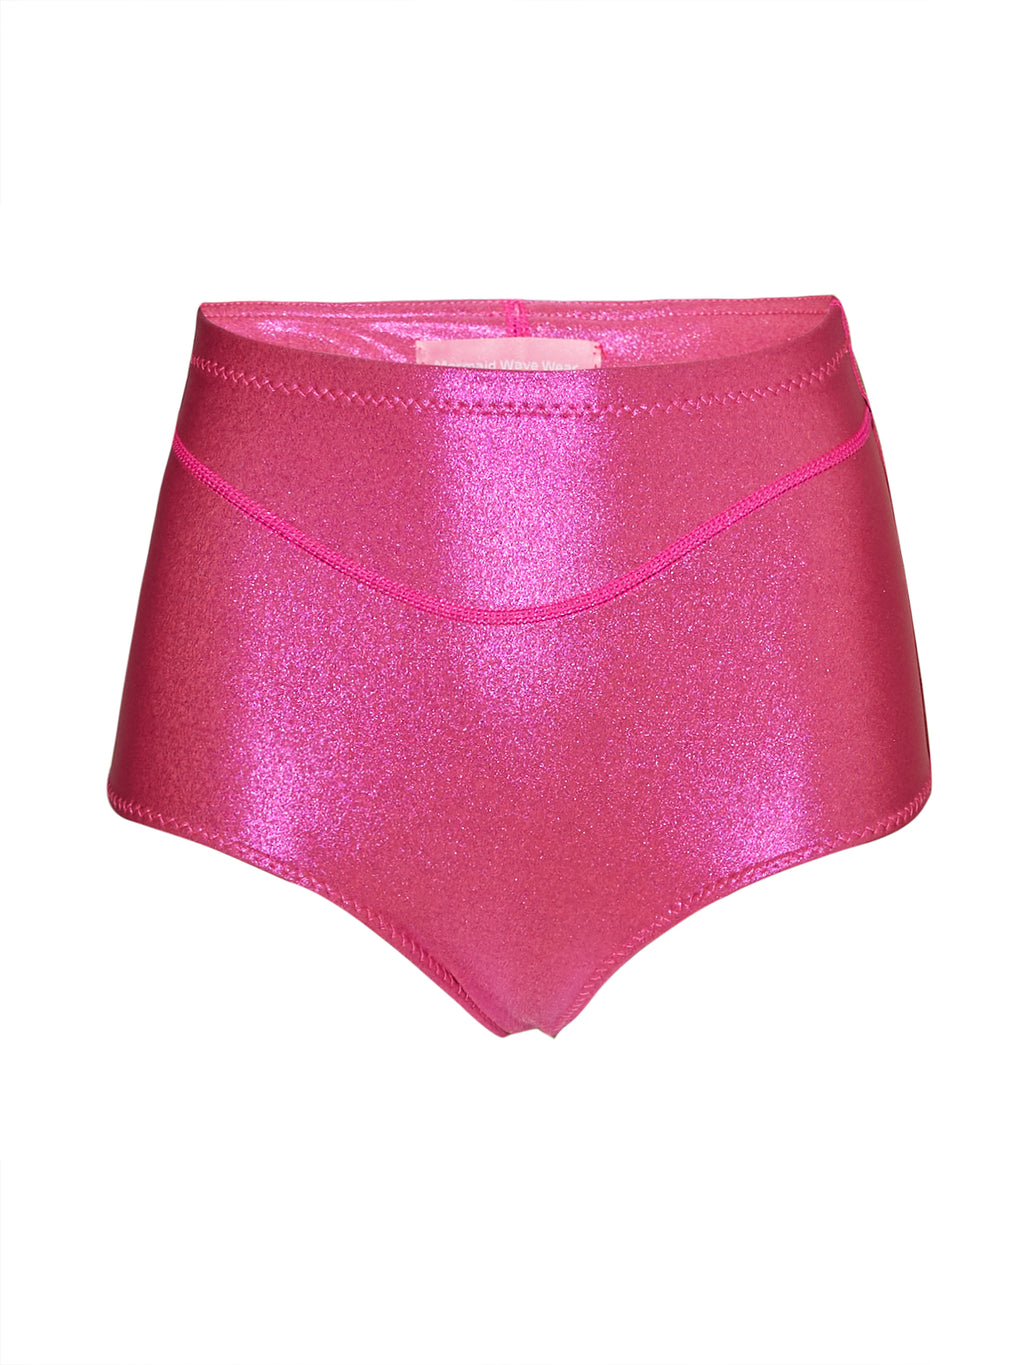 sparkling pink detox high and mighty shorts - Mermaid Wave Wear